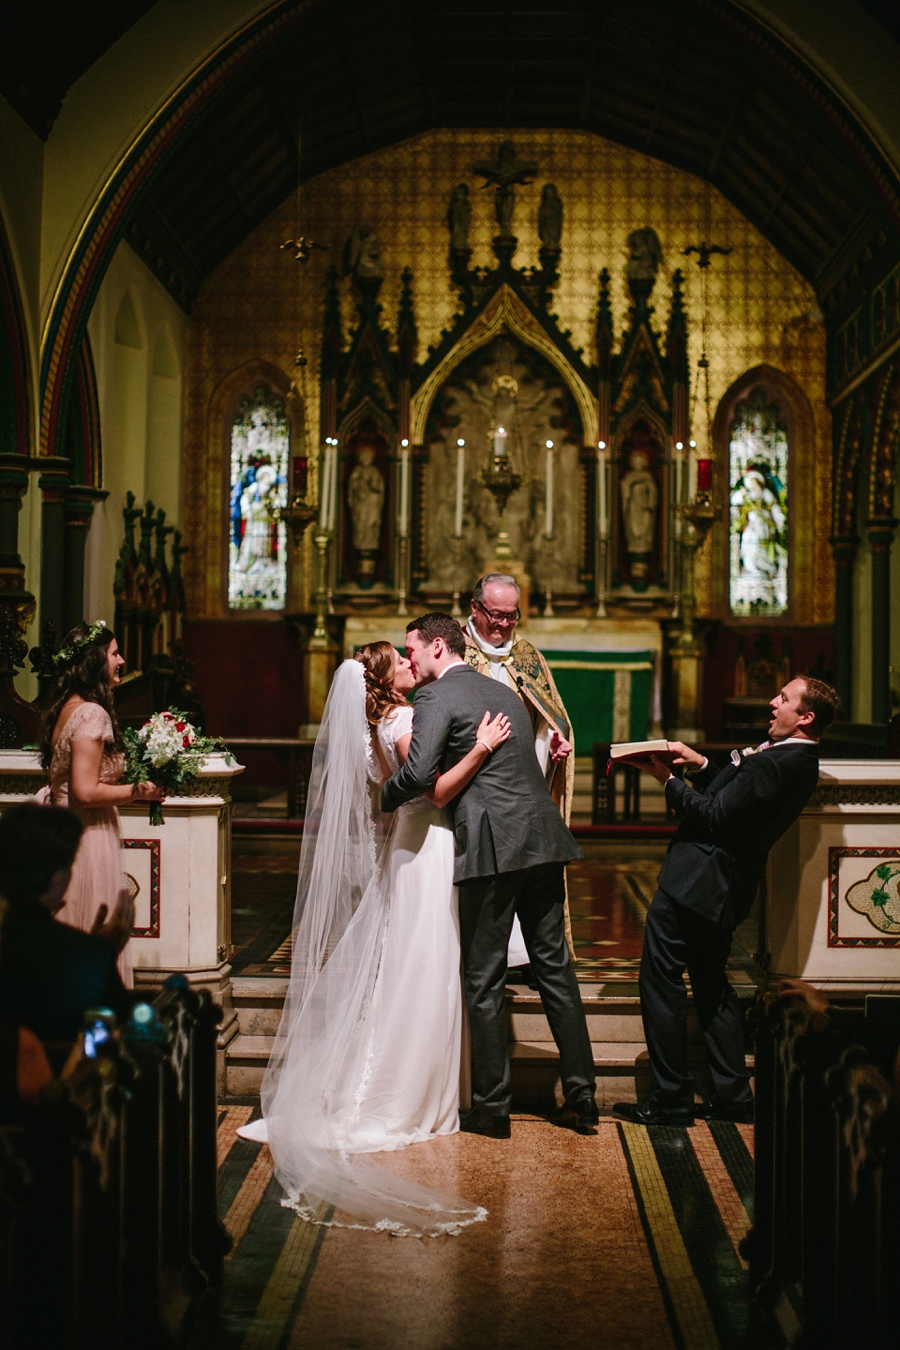 NYC-destination-wedding-photographer-tribeca-intimate-church_0022.jpg